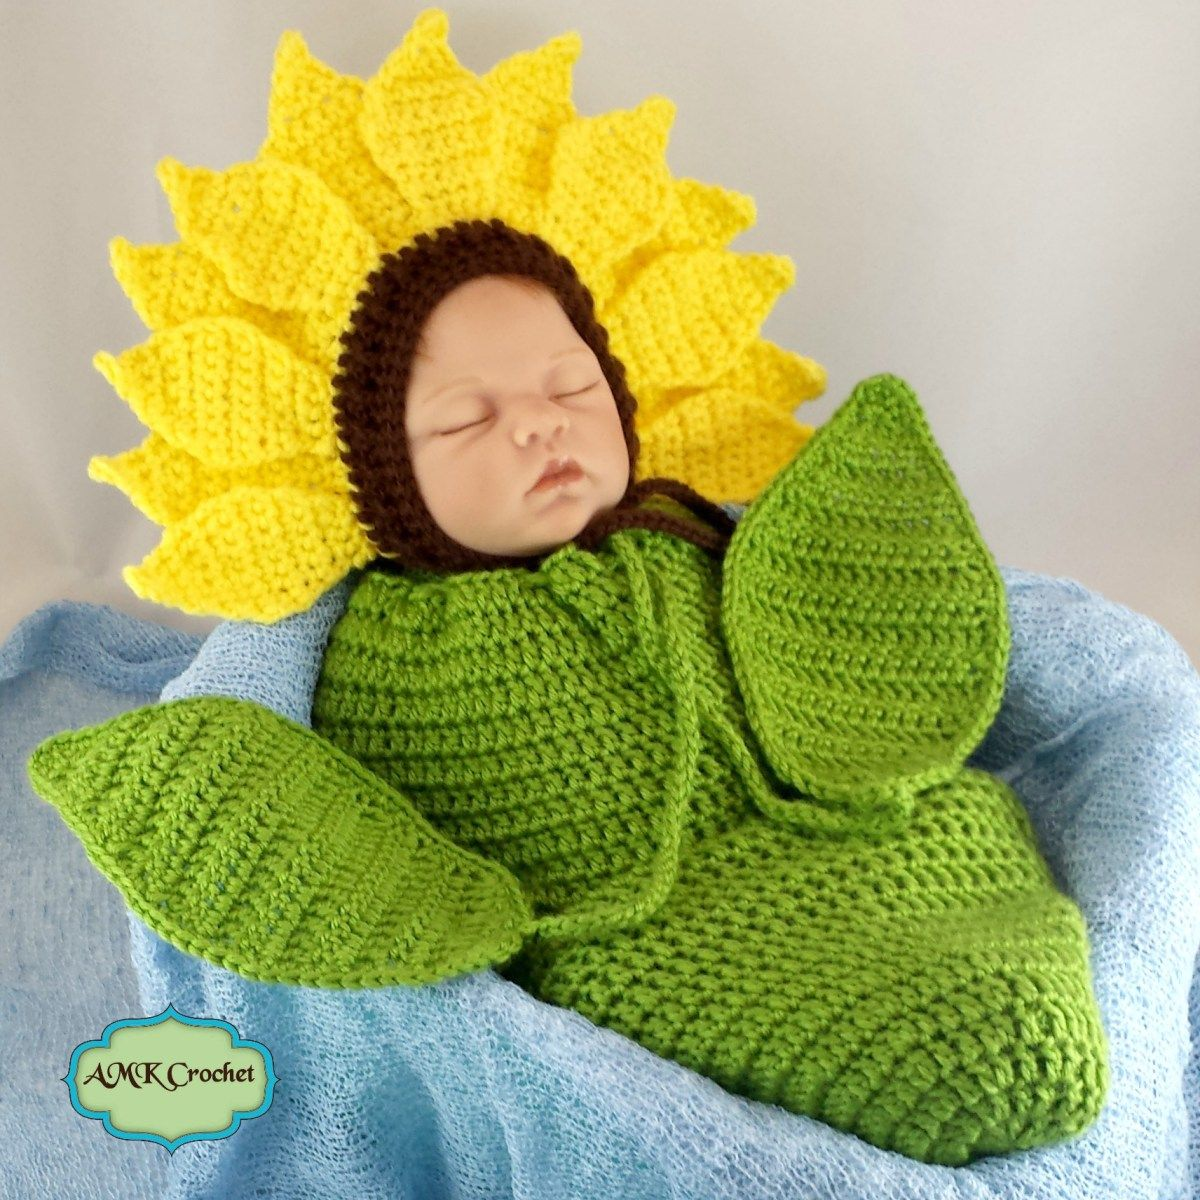 Crochet Newborn Sunflower Bonnet Hat with Cocoon Photo Prop Pattern by  AMKCrochet.com. Leaves attached to the ties of the swaddle sack 927f5259ef50